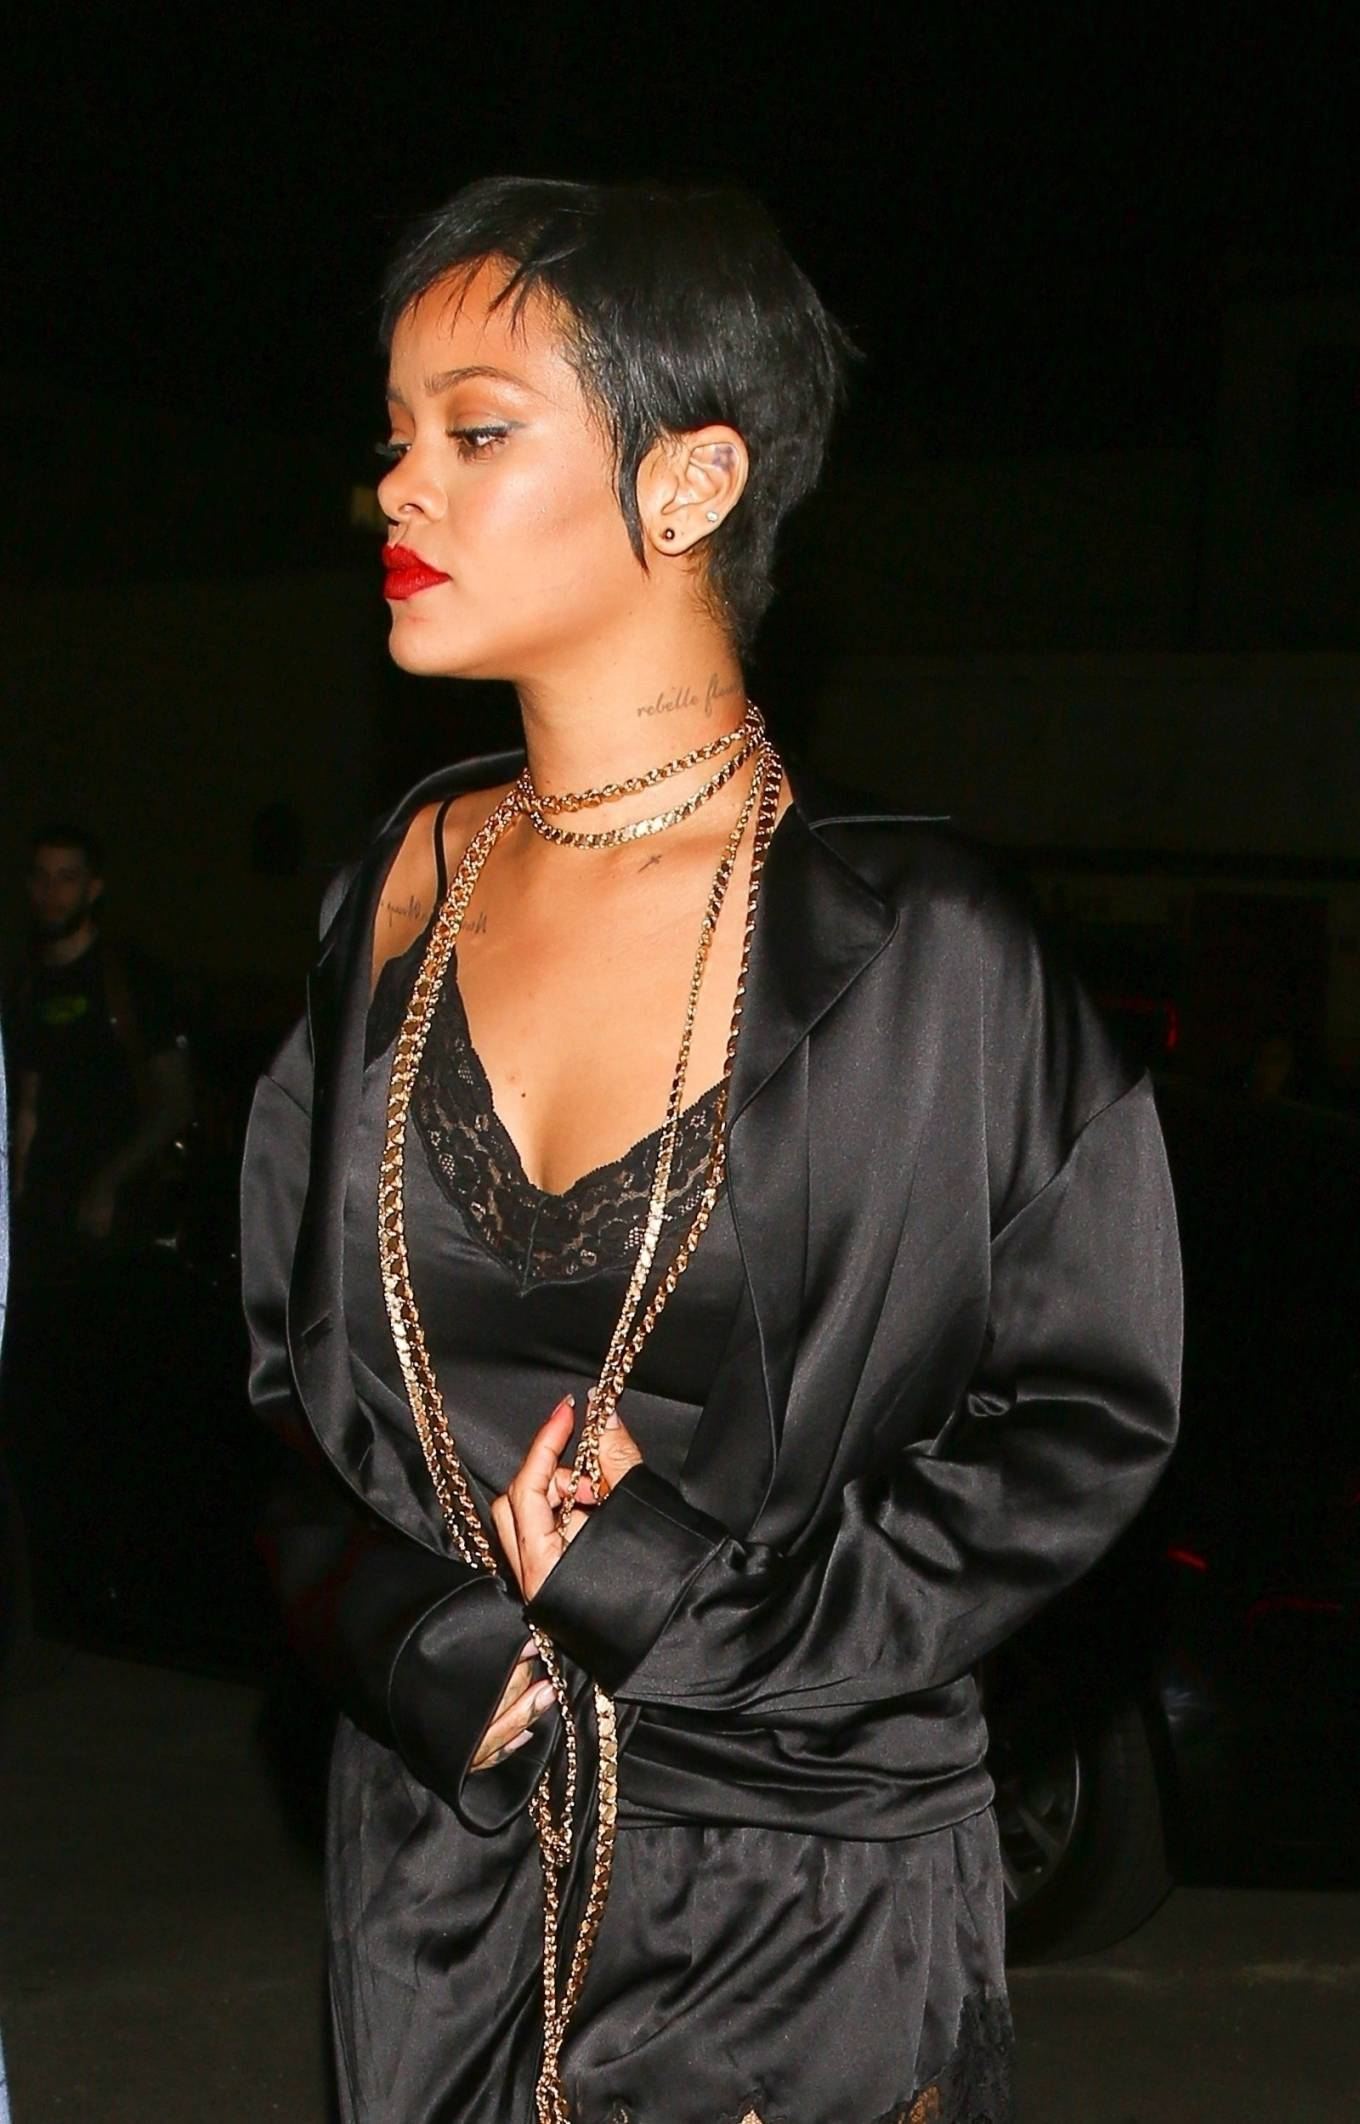 Rihanna - Night out with friends at Delilah Nightclub in West Hollywood